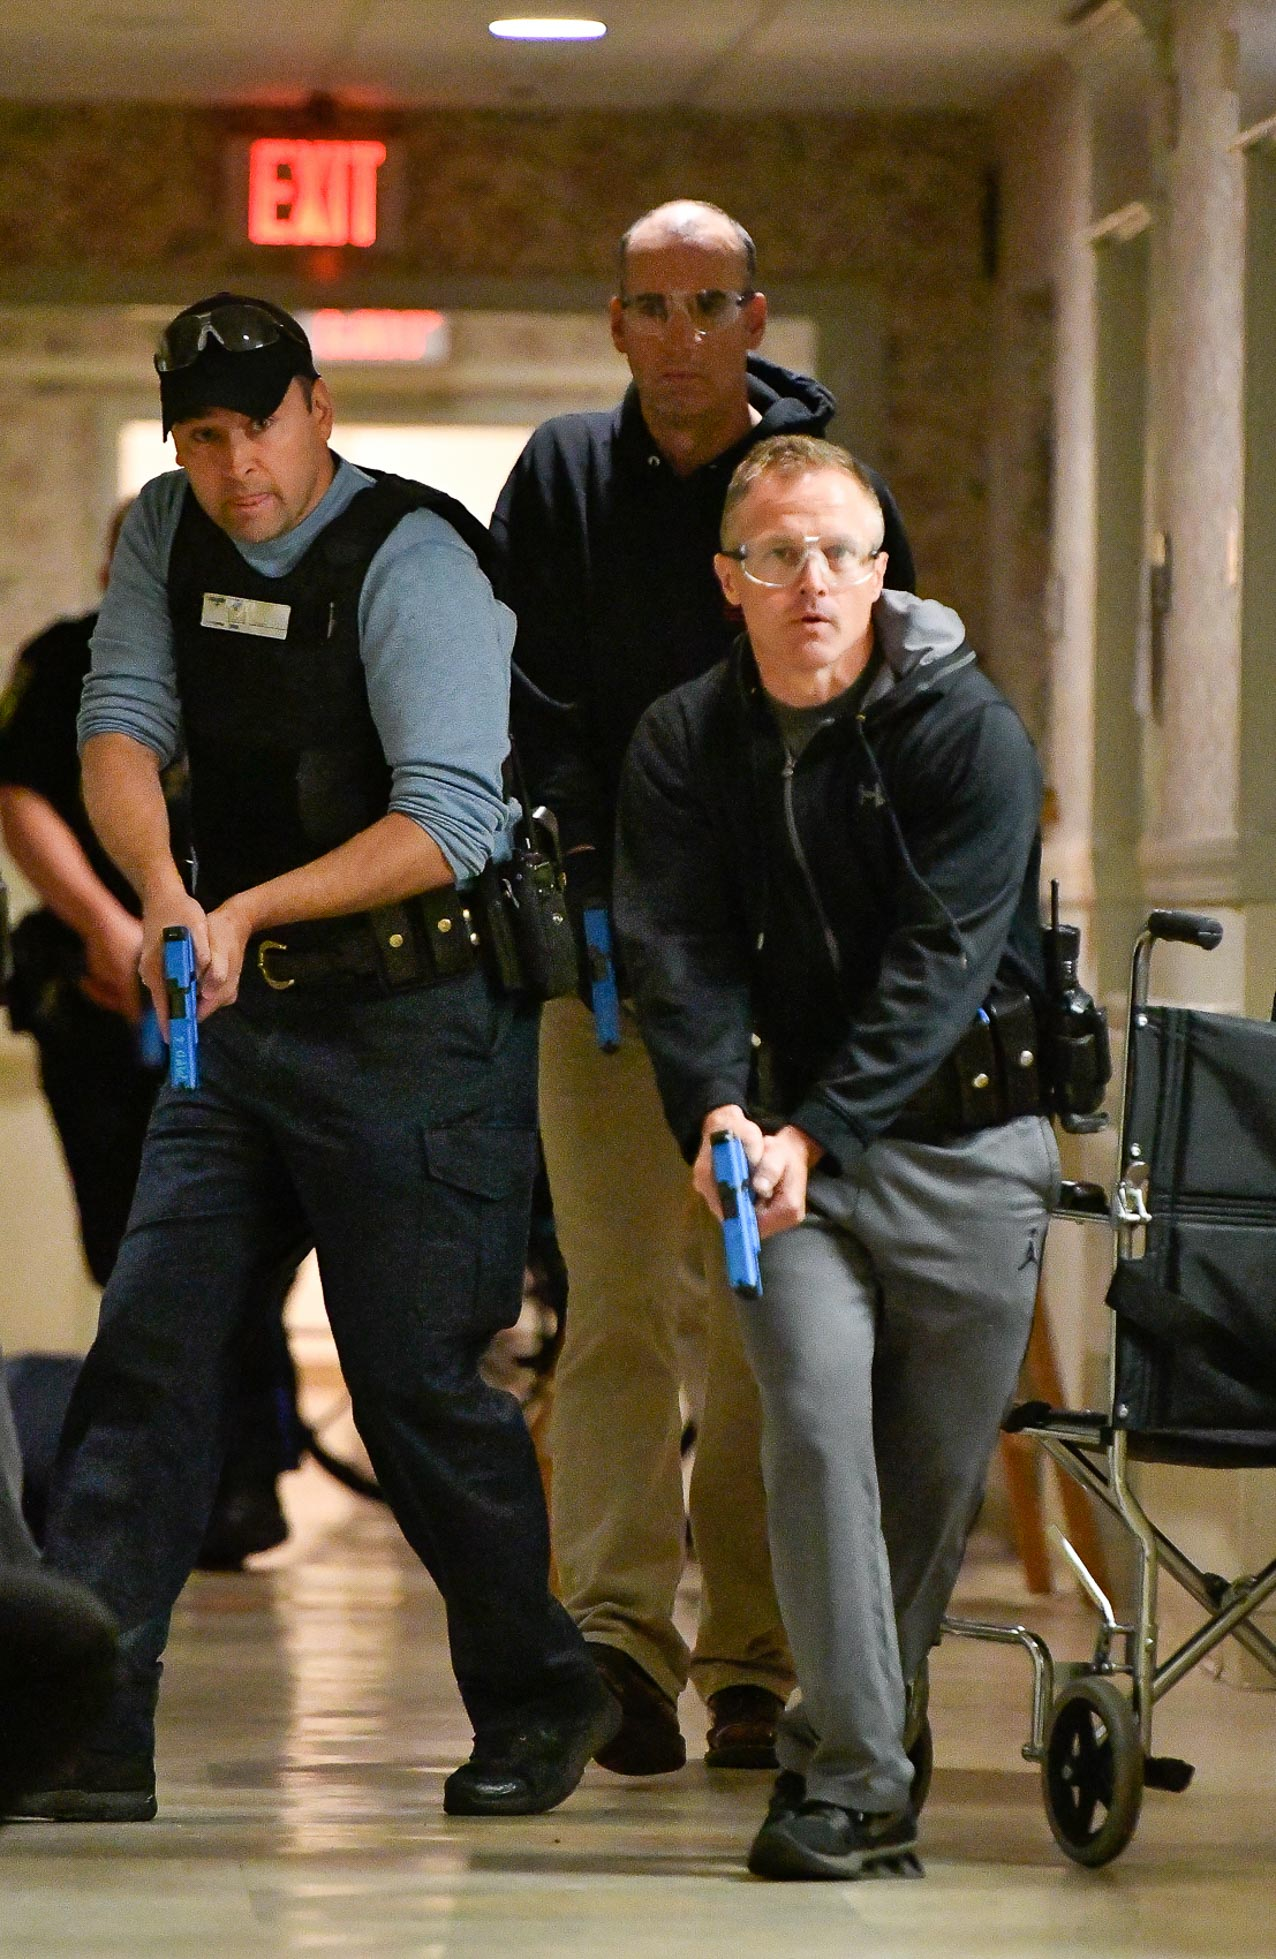 3rd, General News Photo  Melrose Police Sgt. Josh Crowley, Patrolman Brian Ladner and Sgt. Dave Mackey take part in an active shooter drill inside Wingate at Melrose on Friday, May 12, 2017.